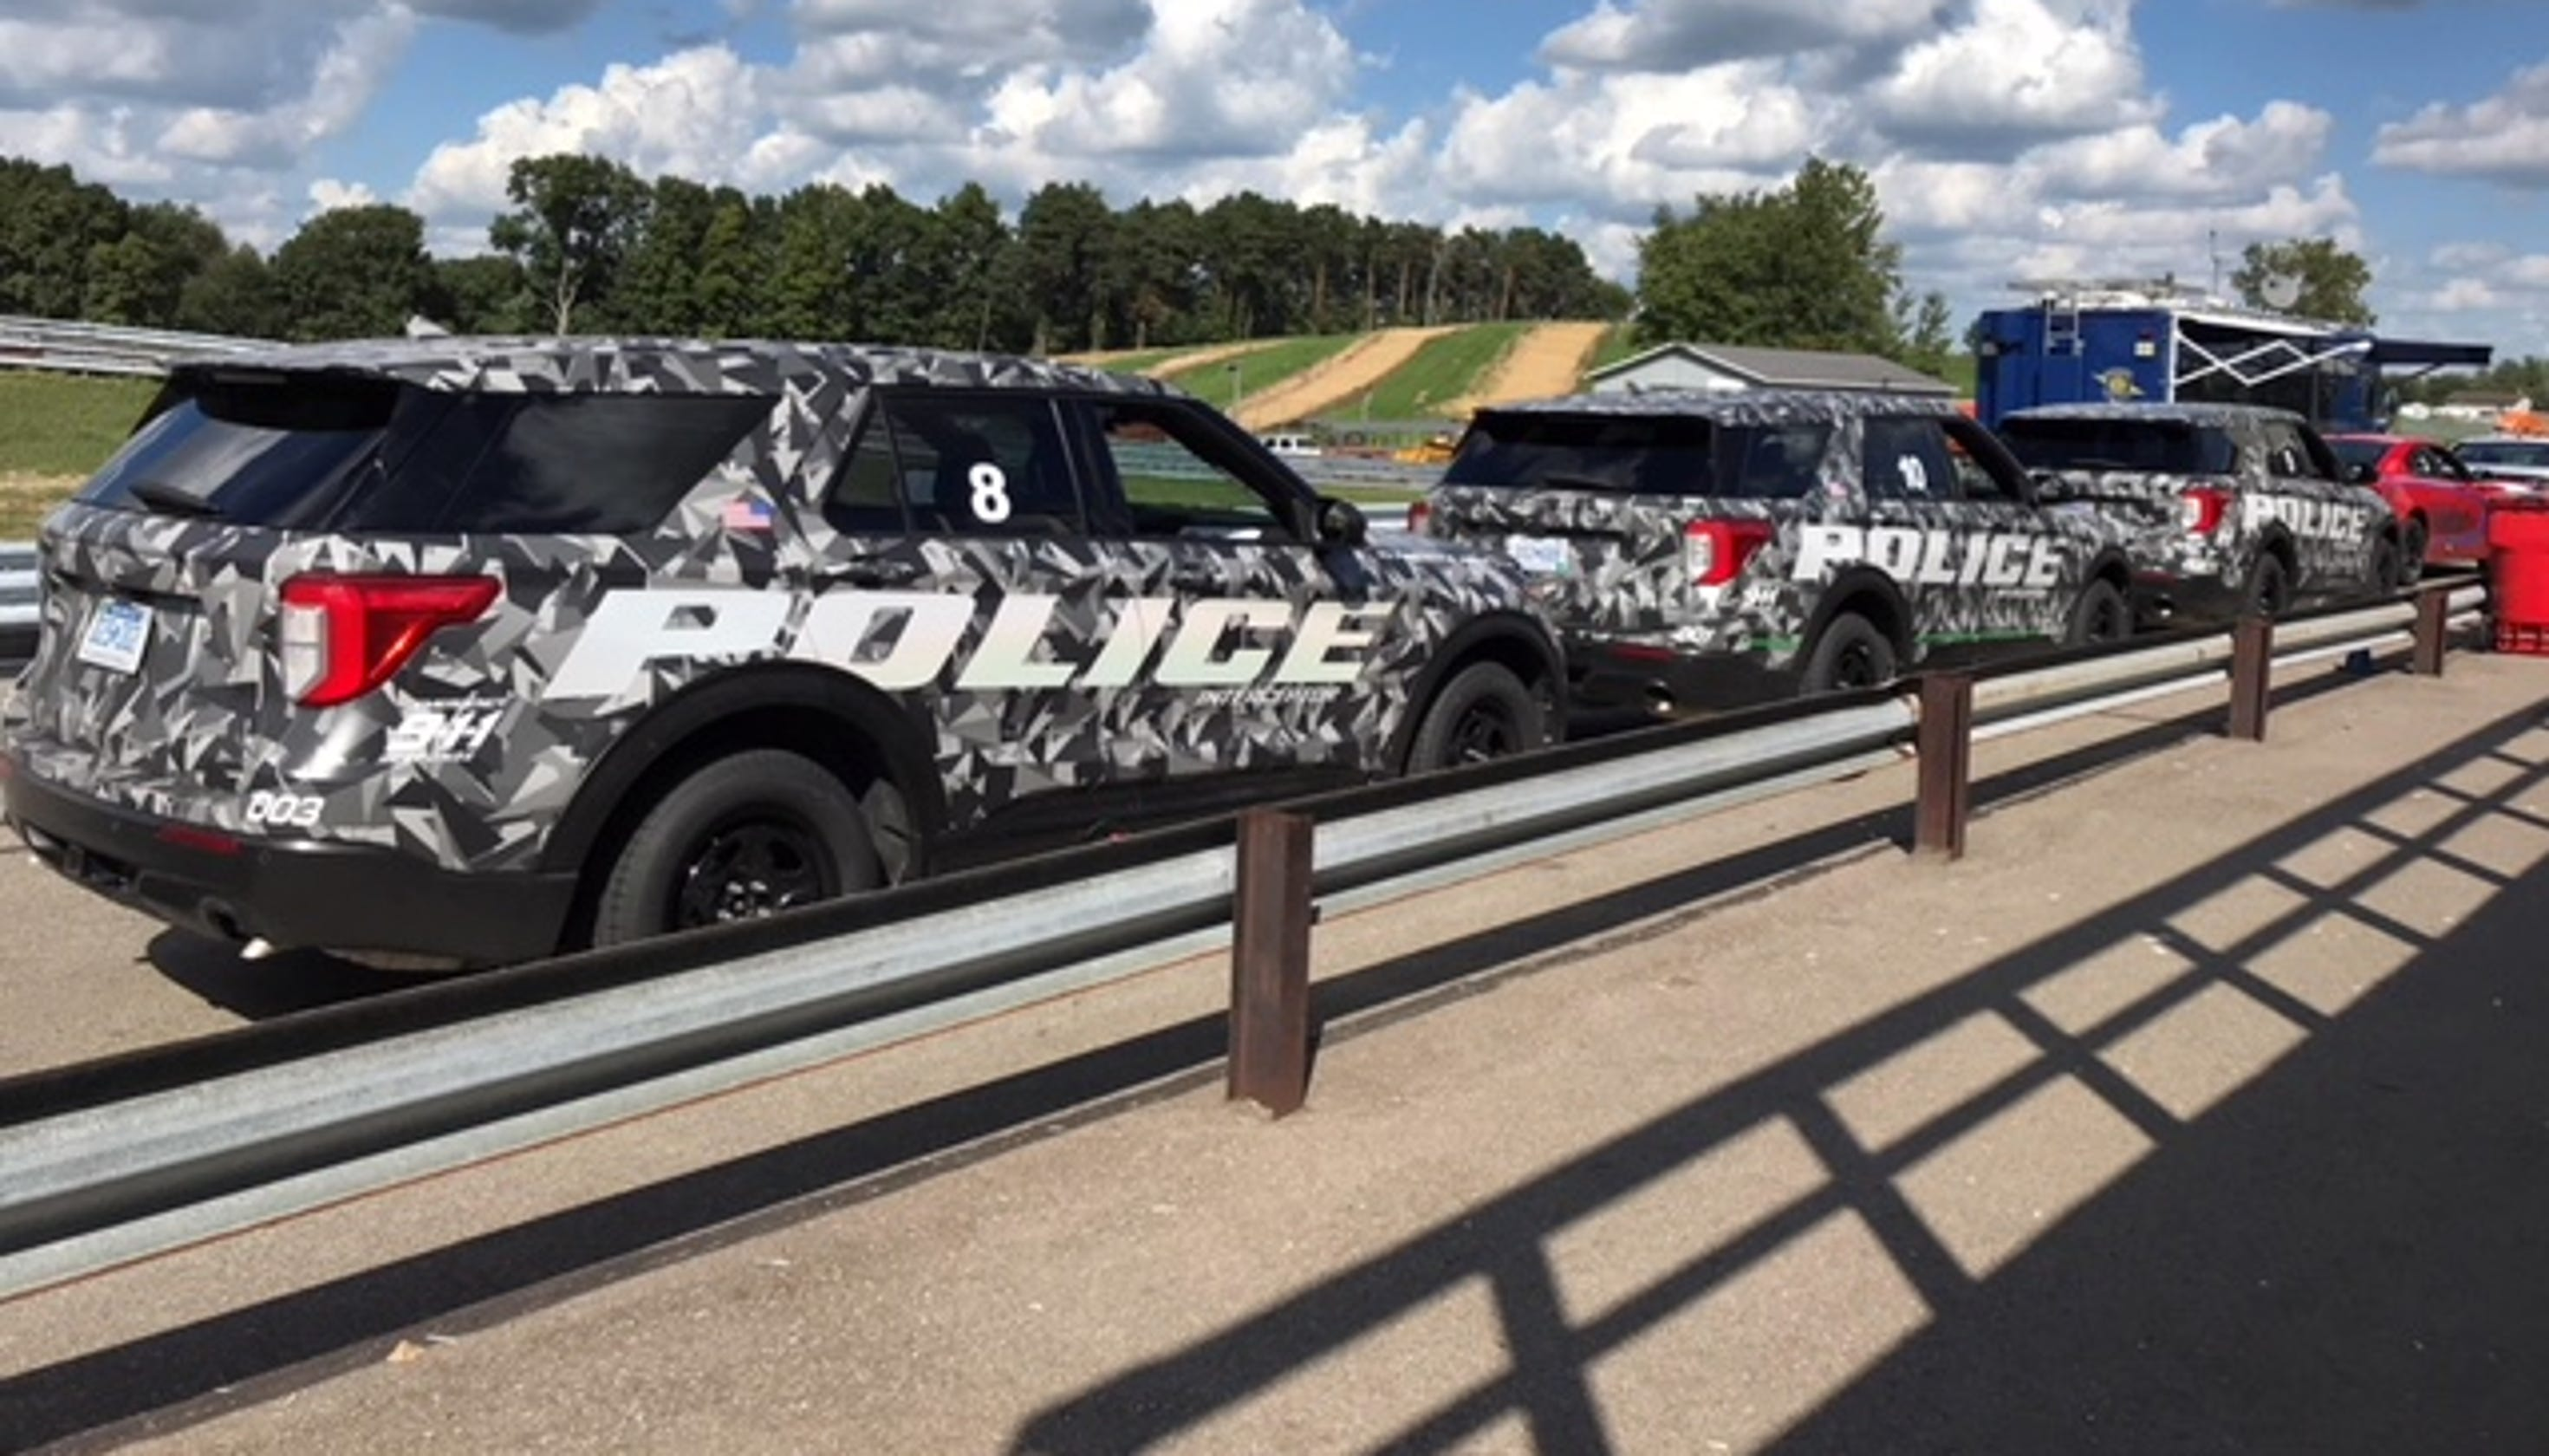 Ford Police Suv Hits 150 Mph To Become Fastest Cop Car